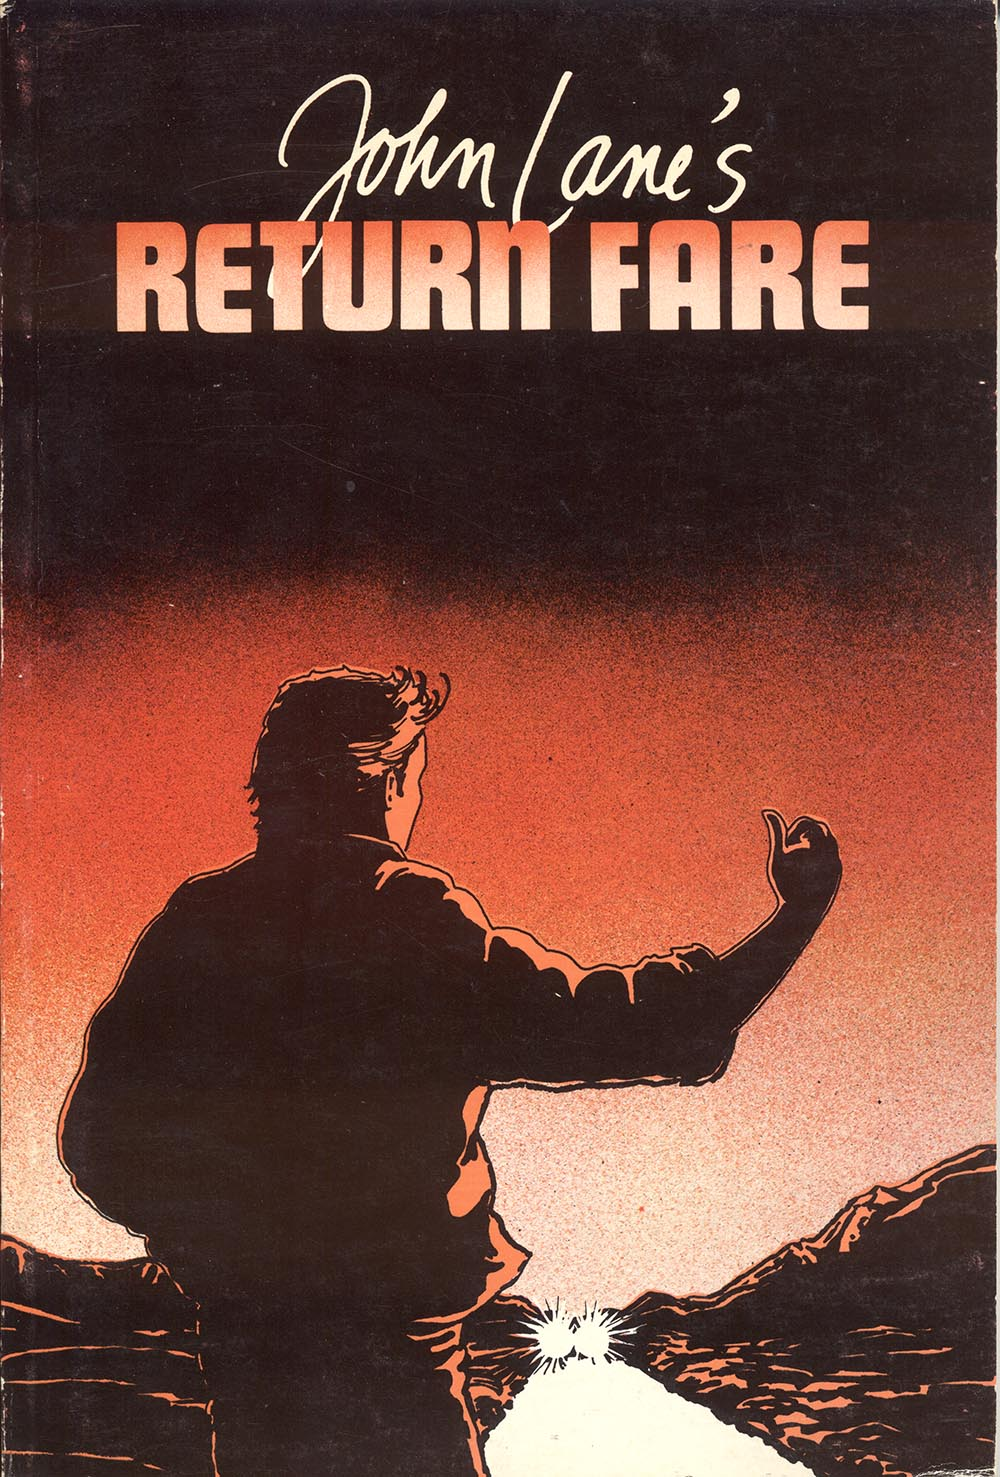 Return Fare by John Lane